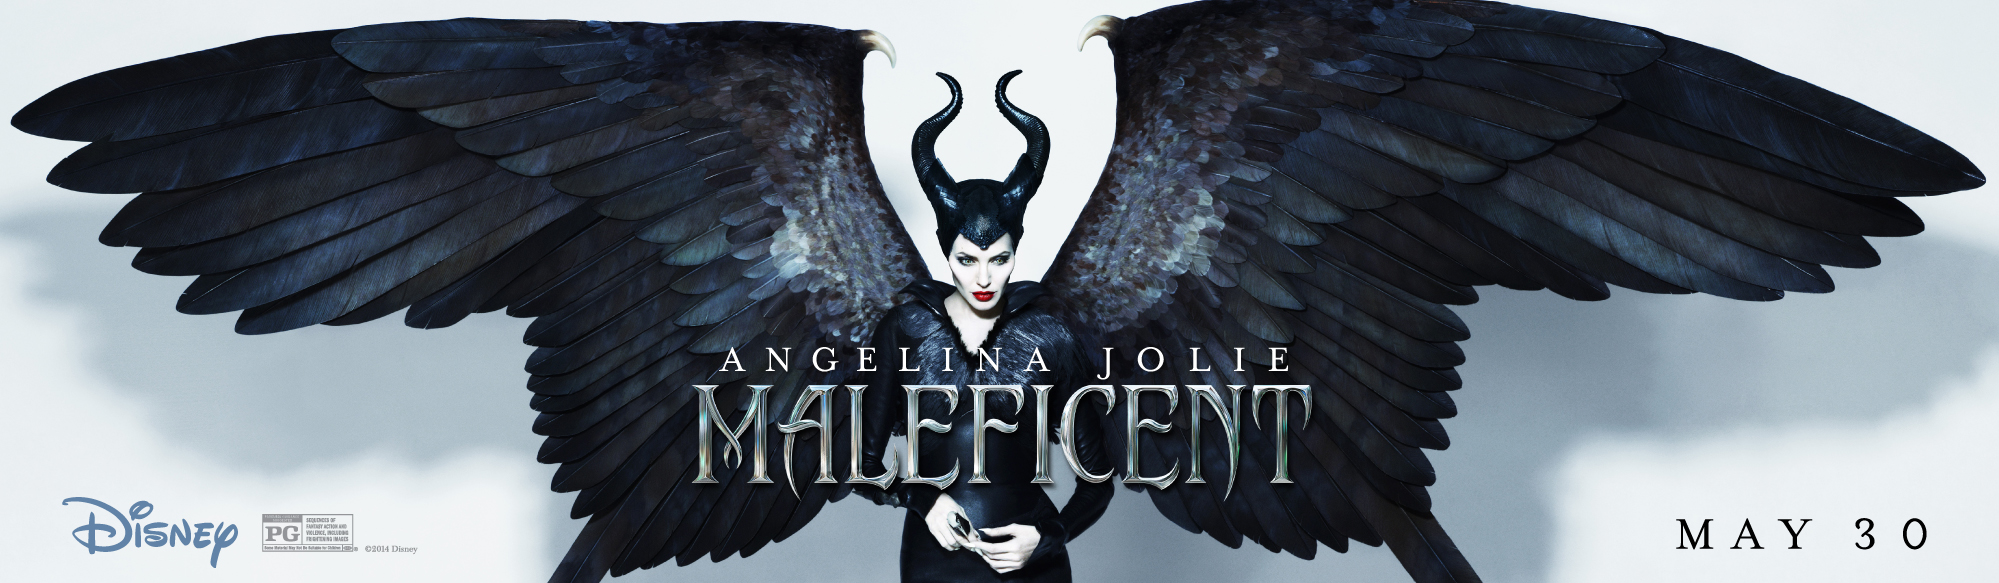 Maleficent-wings-banner1